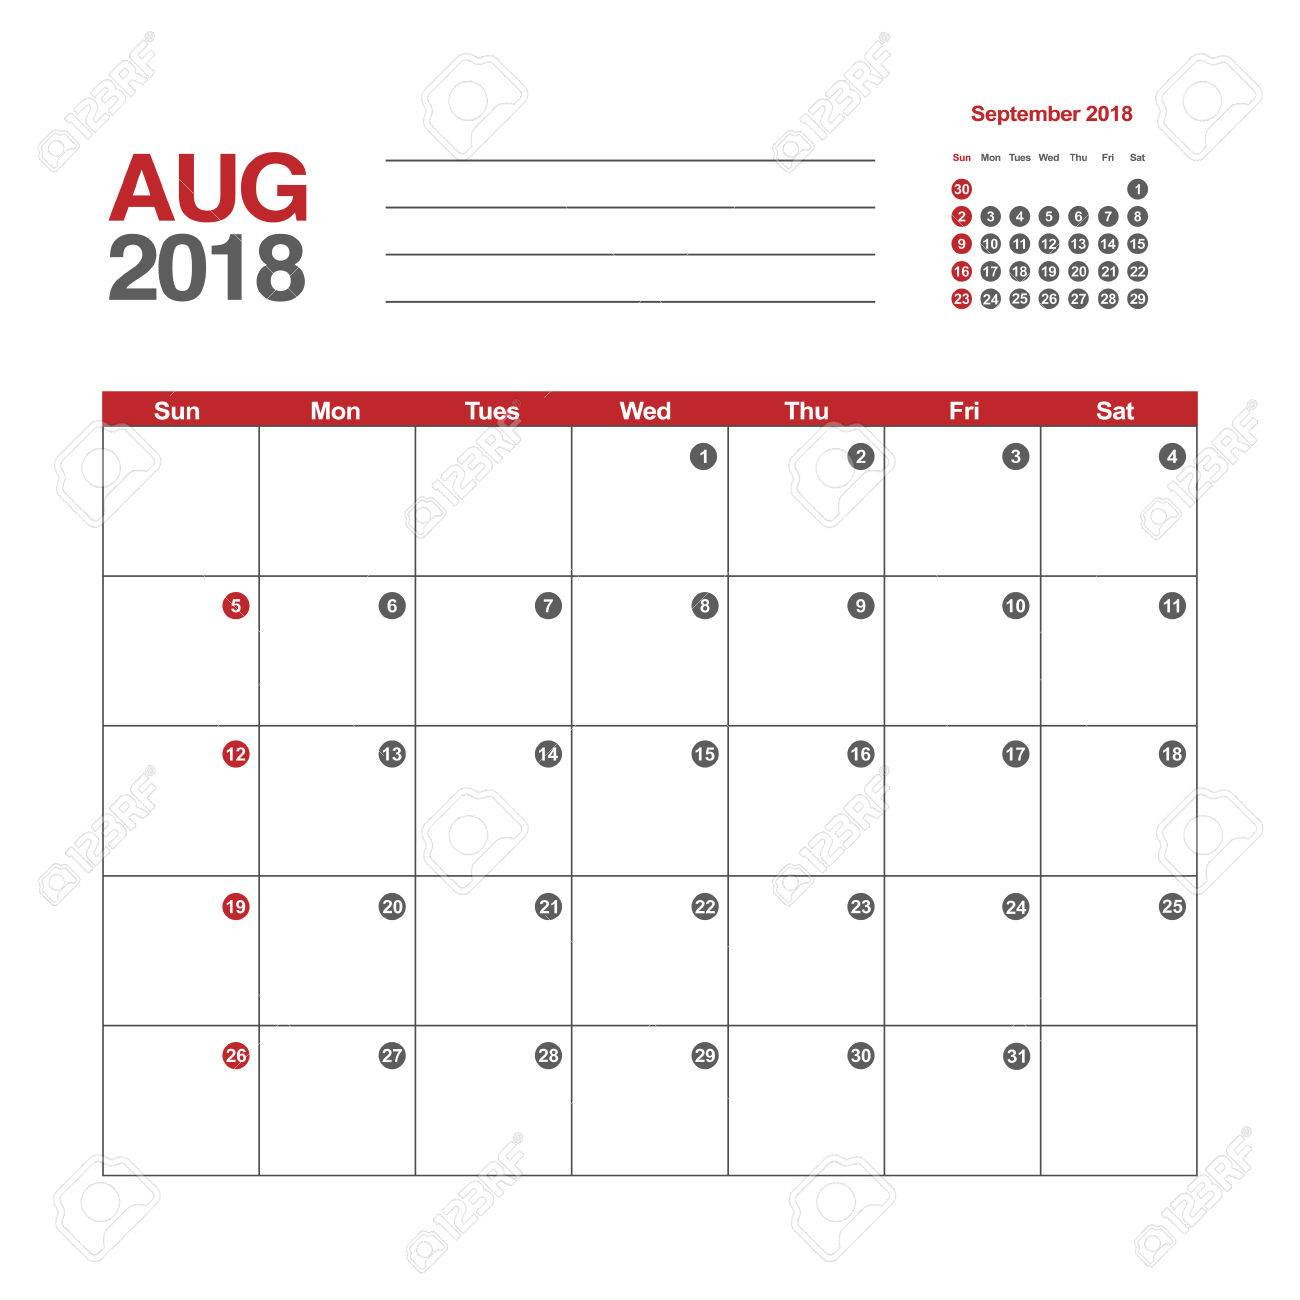 Template of calendar for August 2018